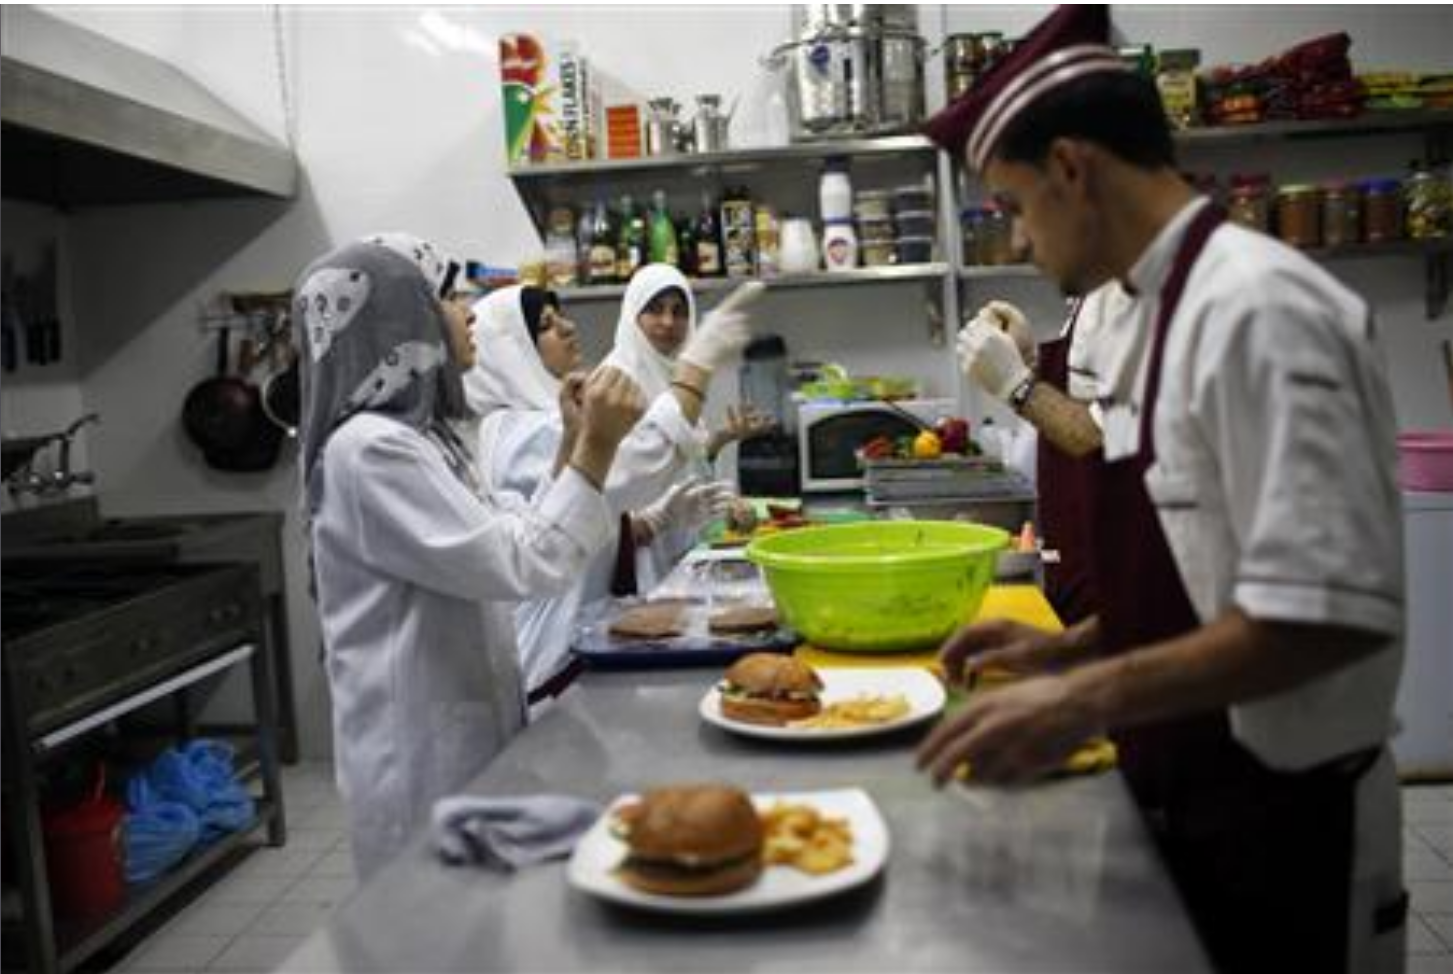 Three hijabi women and two men are working in the kitchen of a deaf restaurant in Gaza. They are signing to each other.